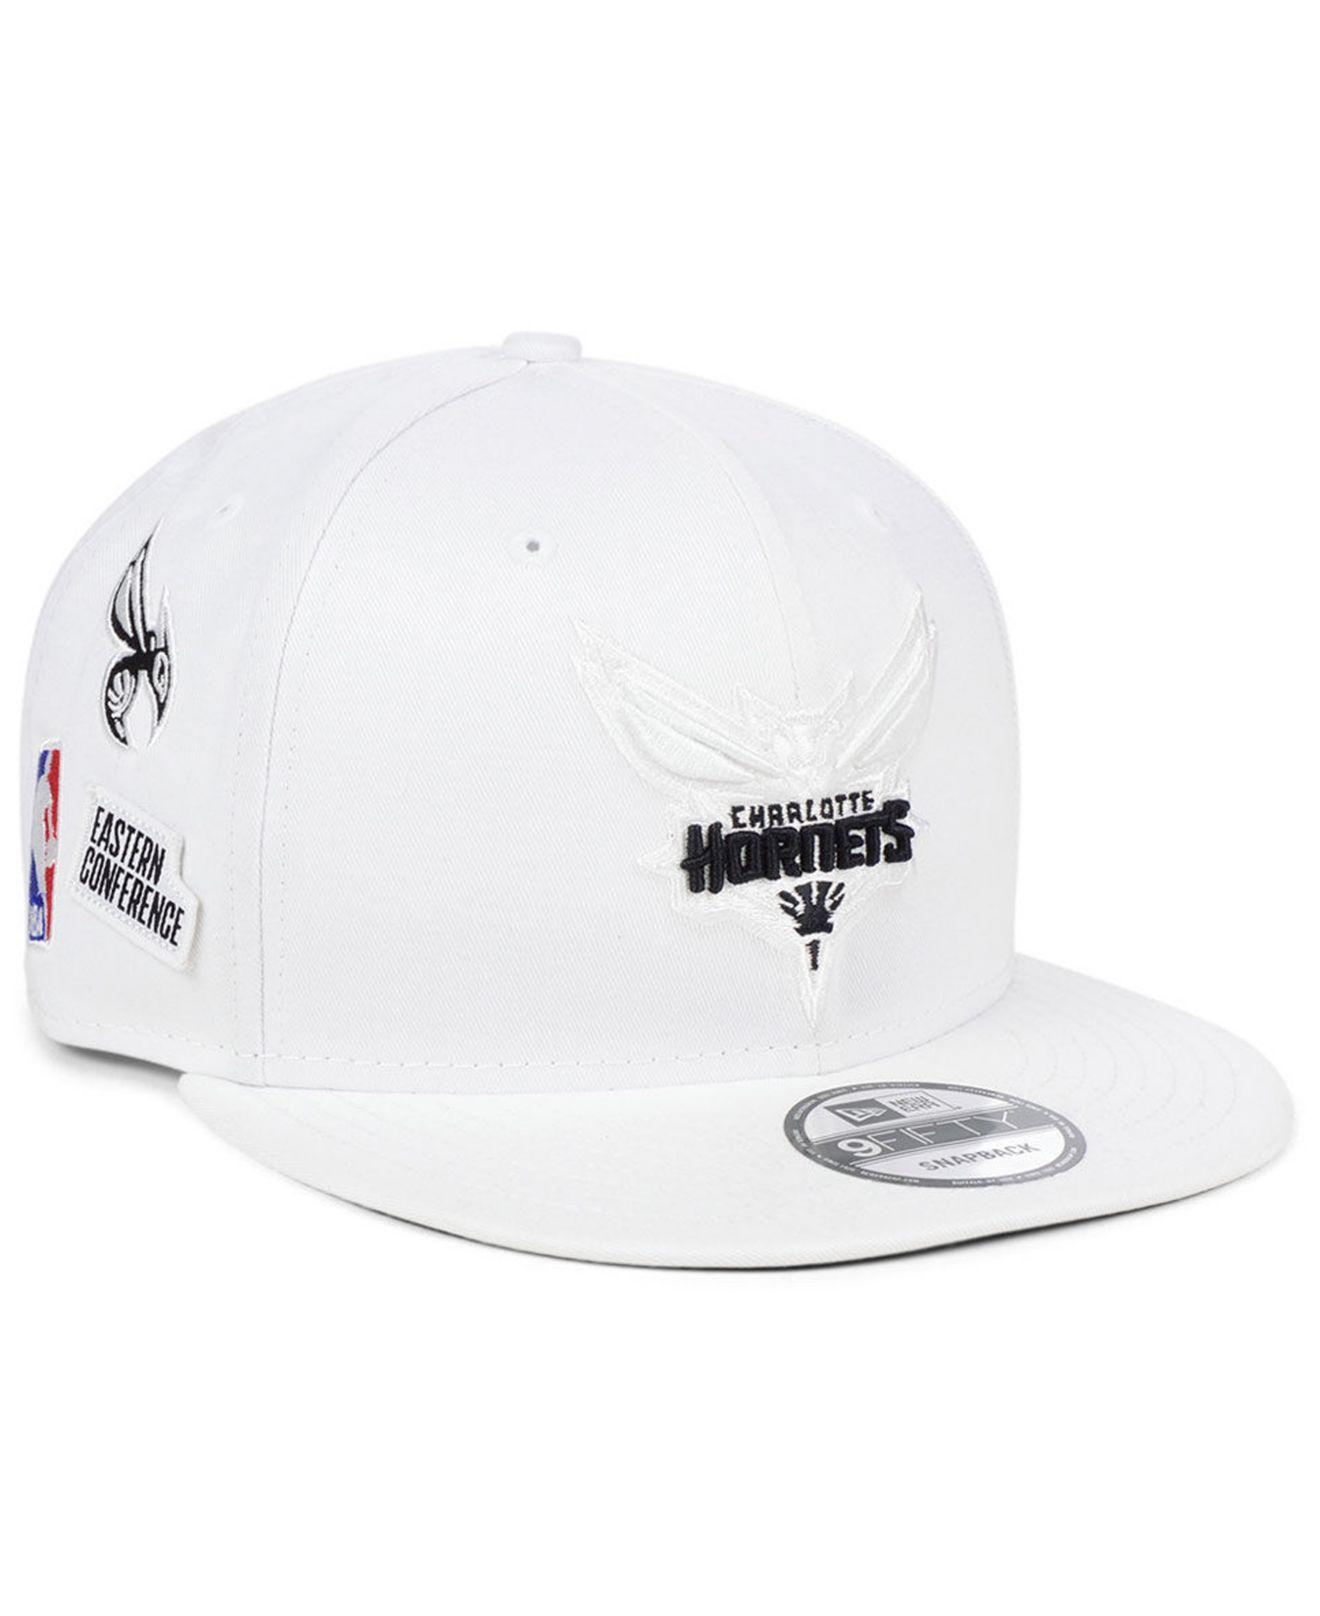 cheaper 37ddb 38514 ... purchase ktz. mens white charlotte hornets night sky 9fifty snapback cap  966c8 9f1d4